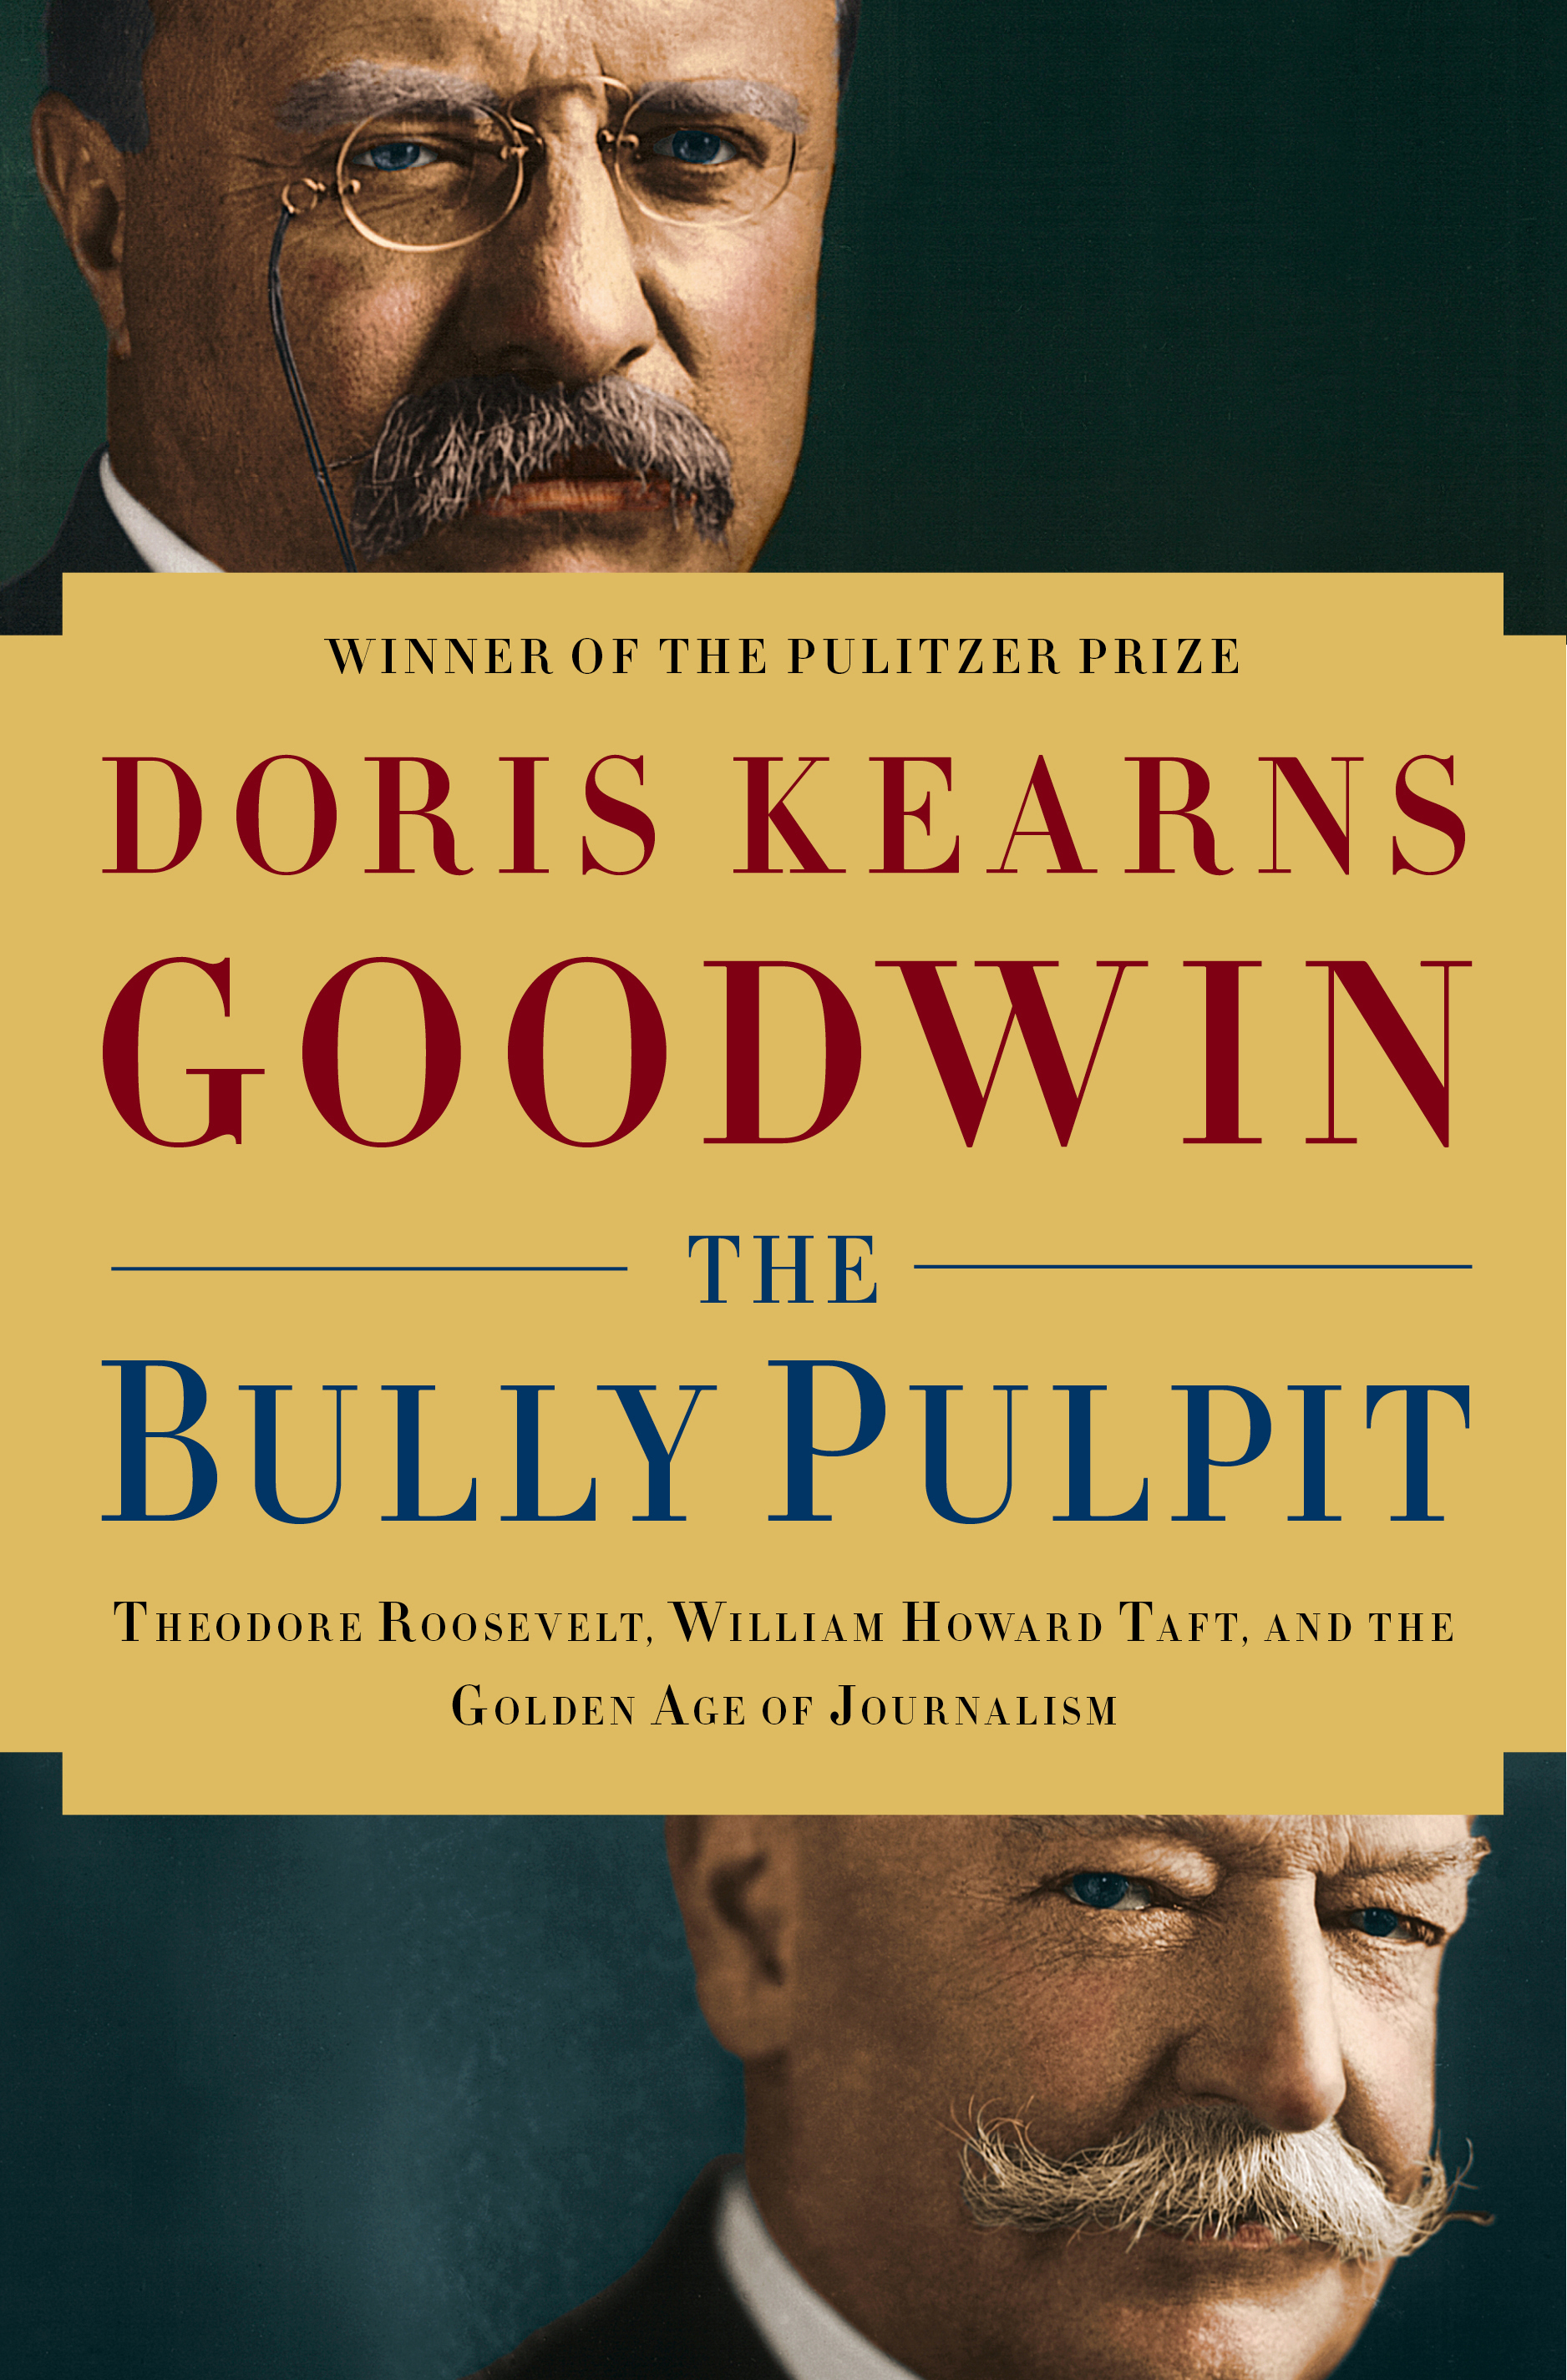 The bully pulpit  theodore roosevelt%2c william howard taft%2c and the golden age of journalism